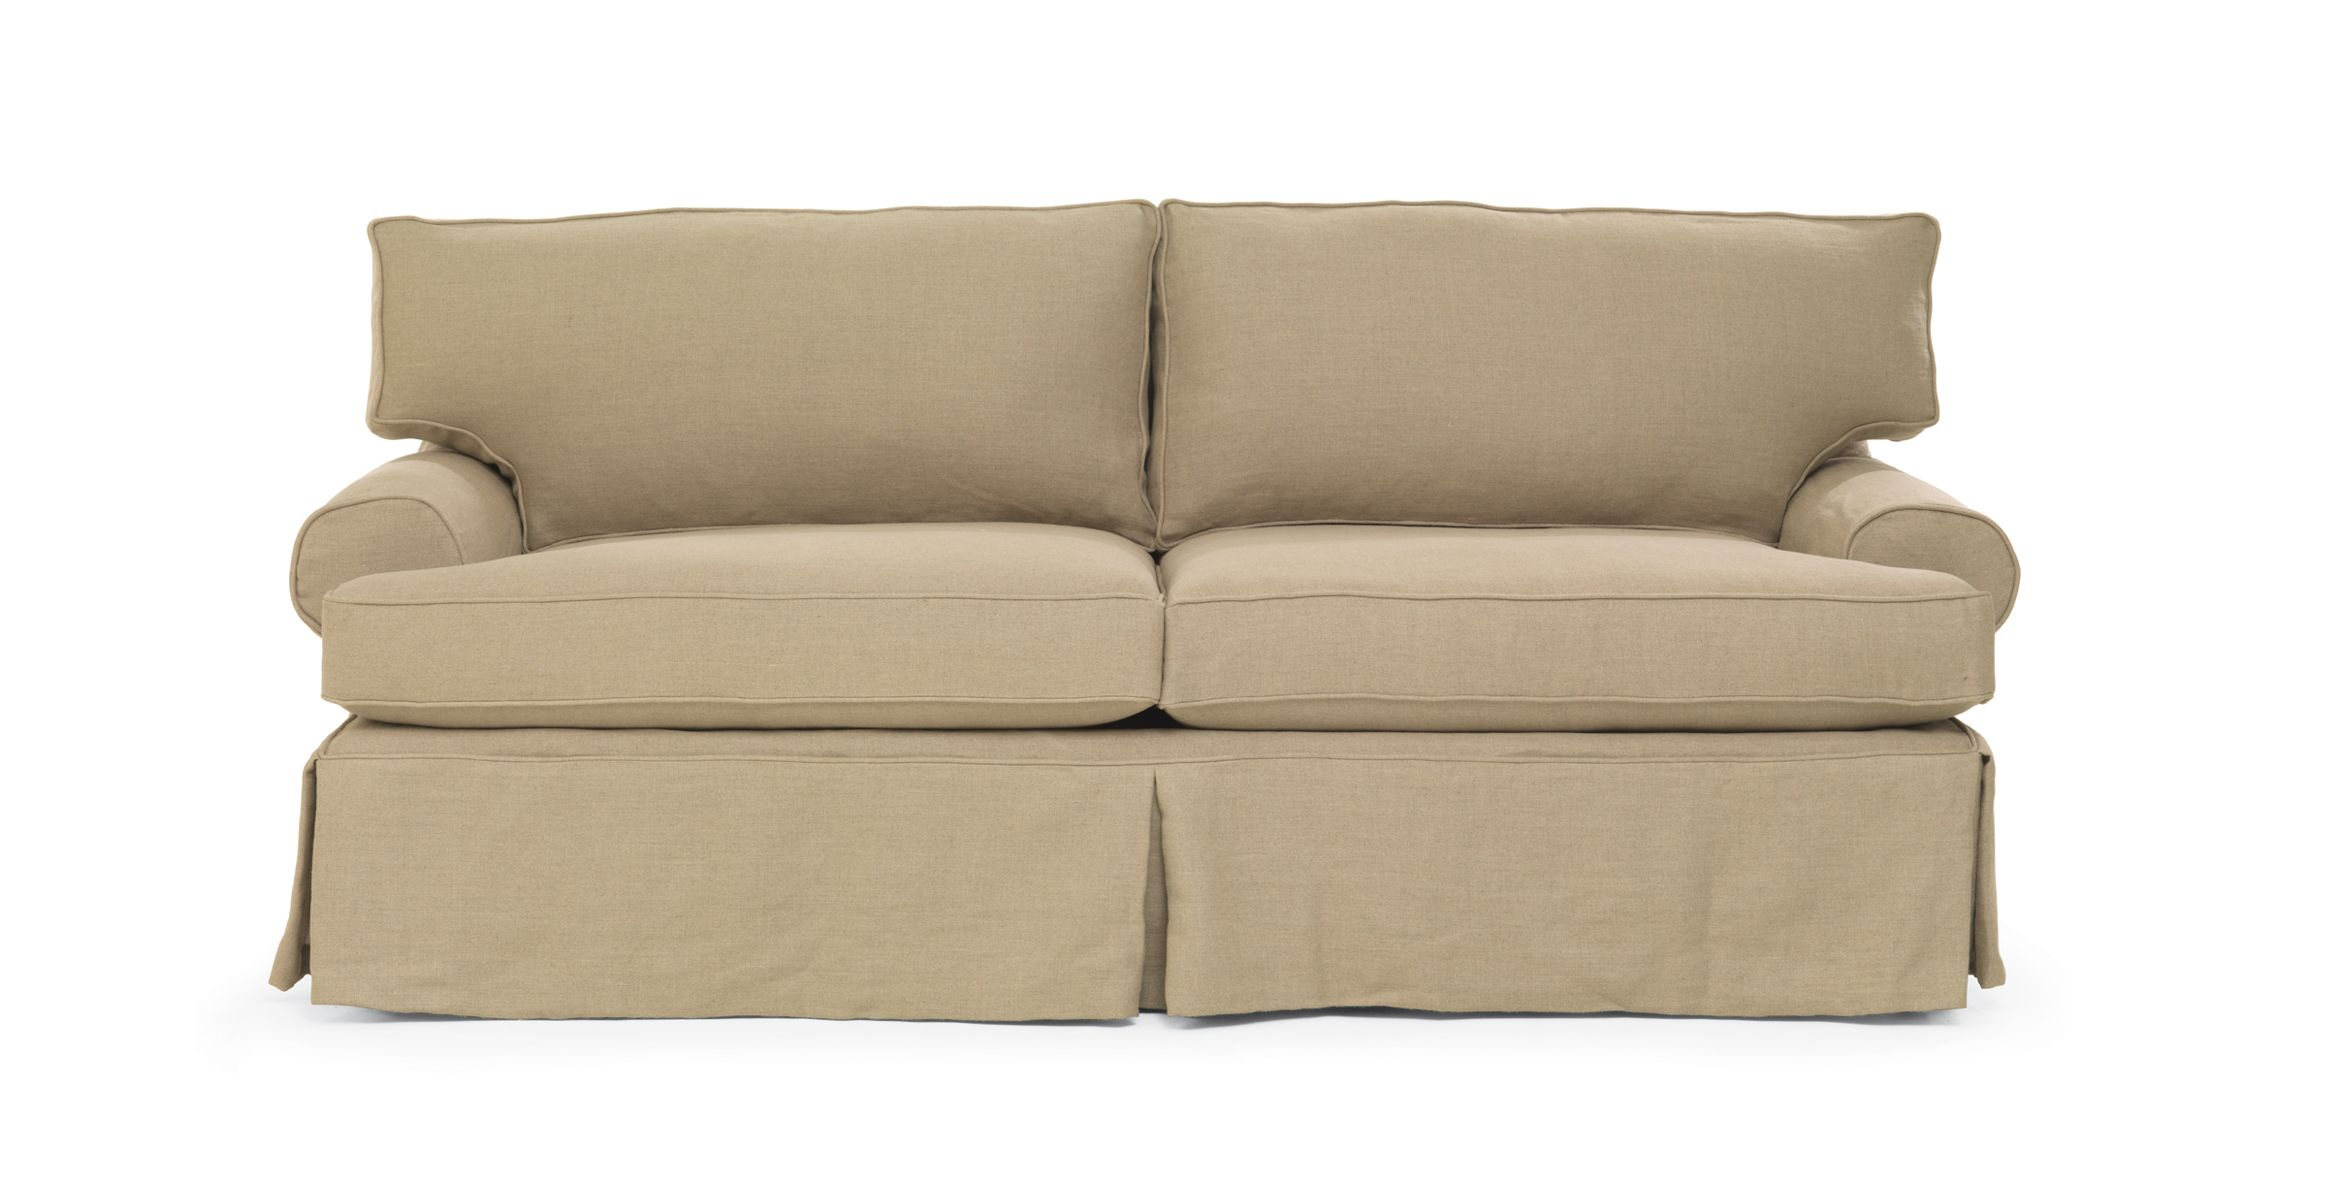 mitchell gold   bob williams nicki sofa  slipcovered in sophie linen  available at lofthome com